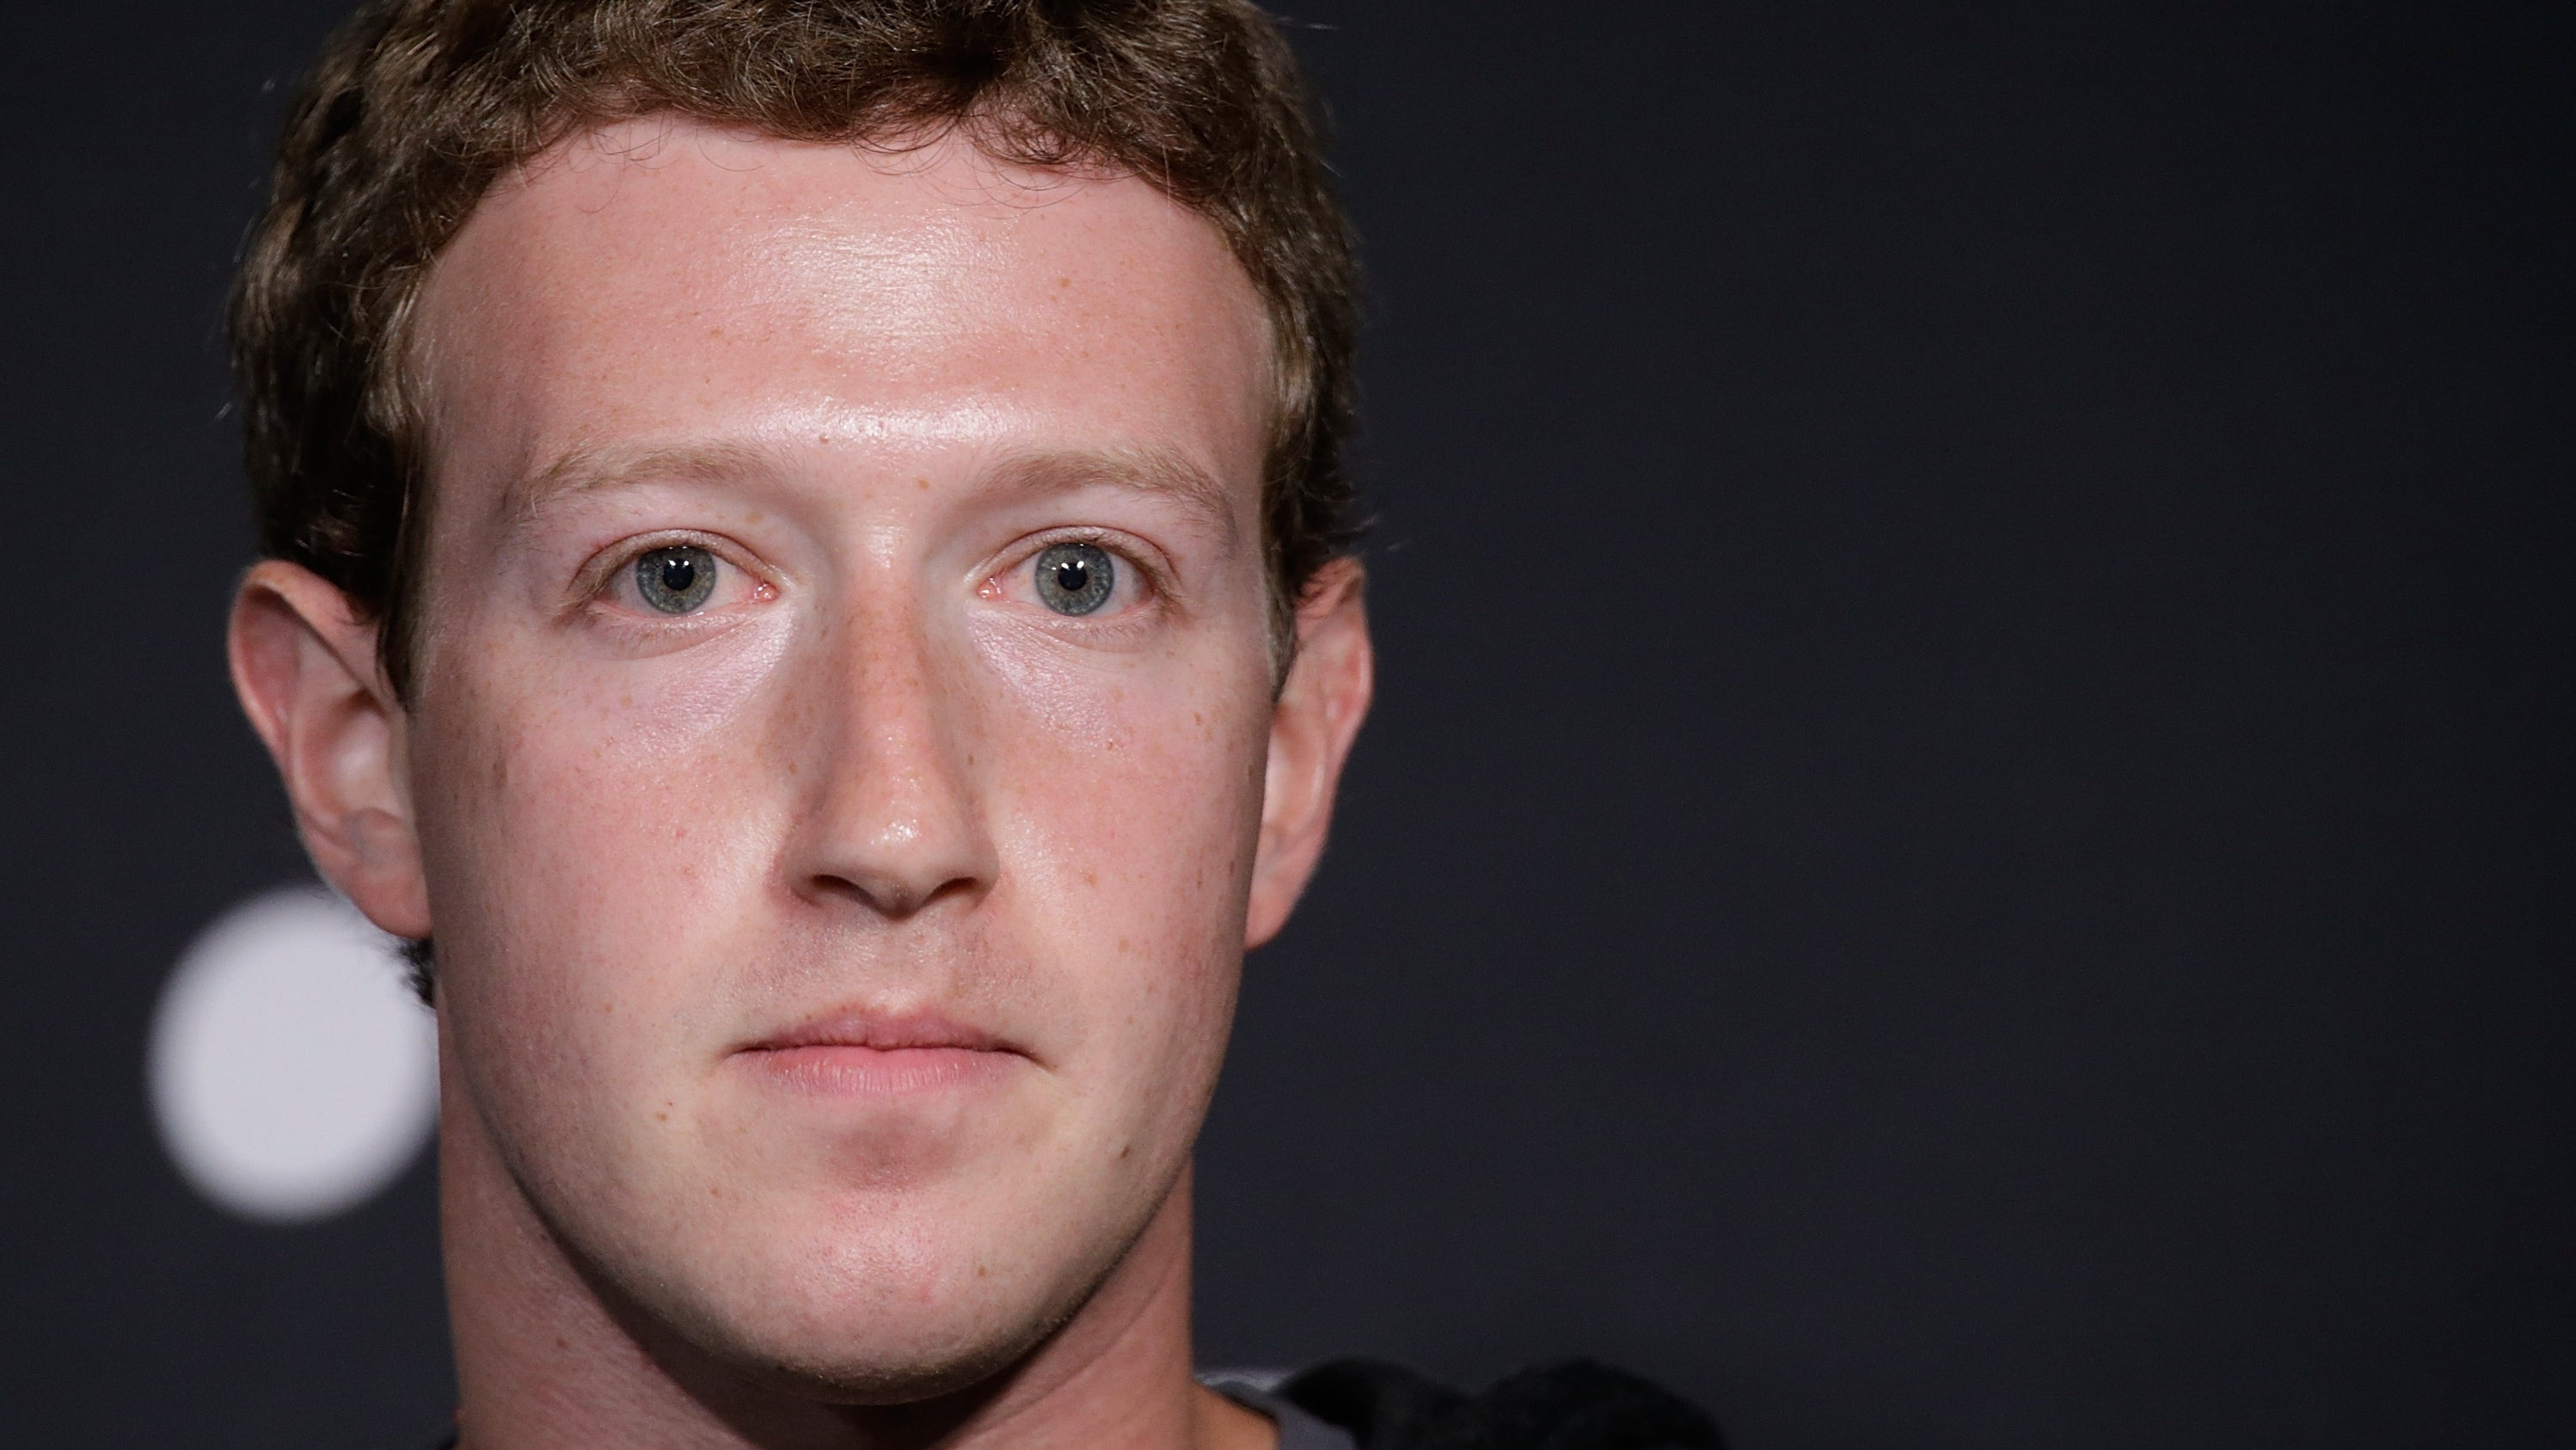 Guess What Facebook Fucked Up This Time